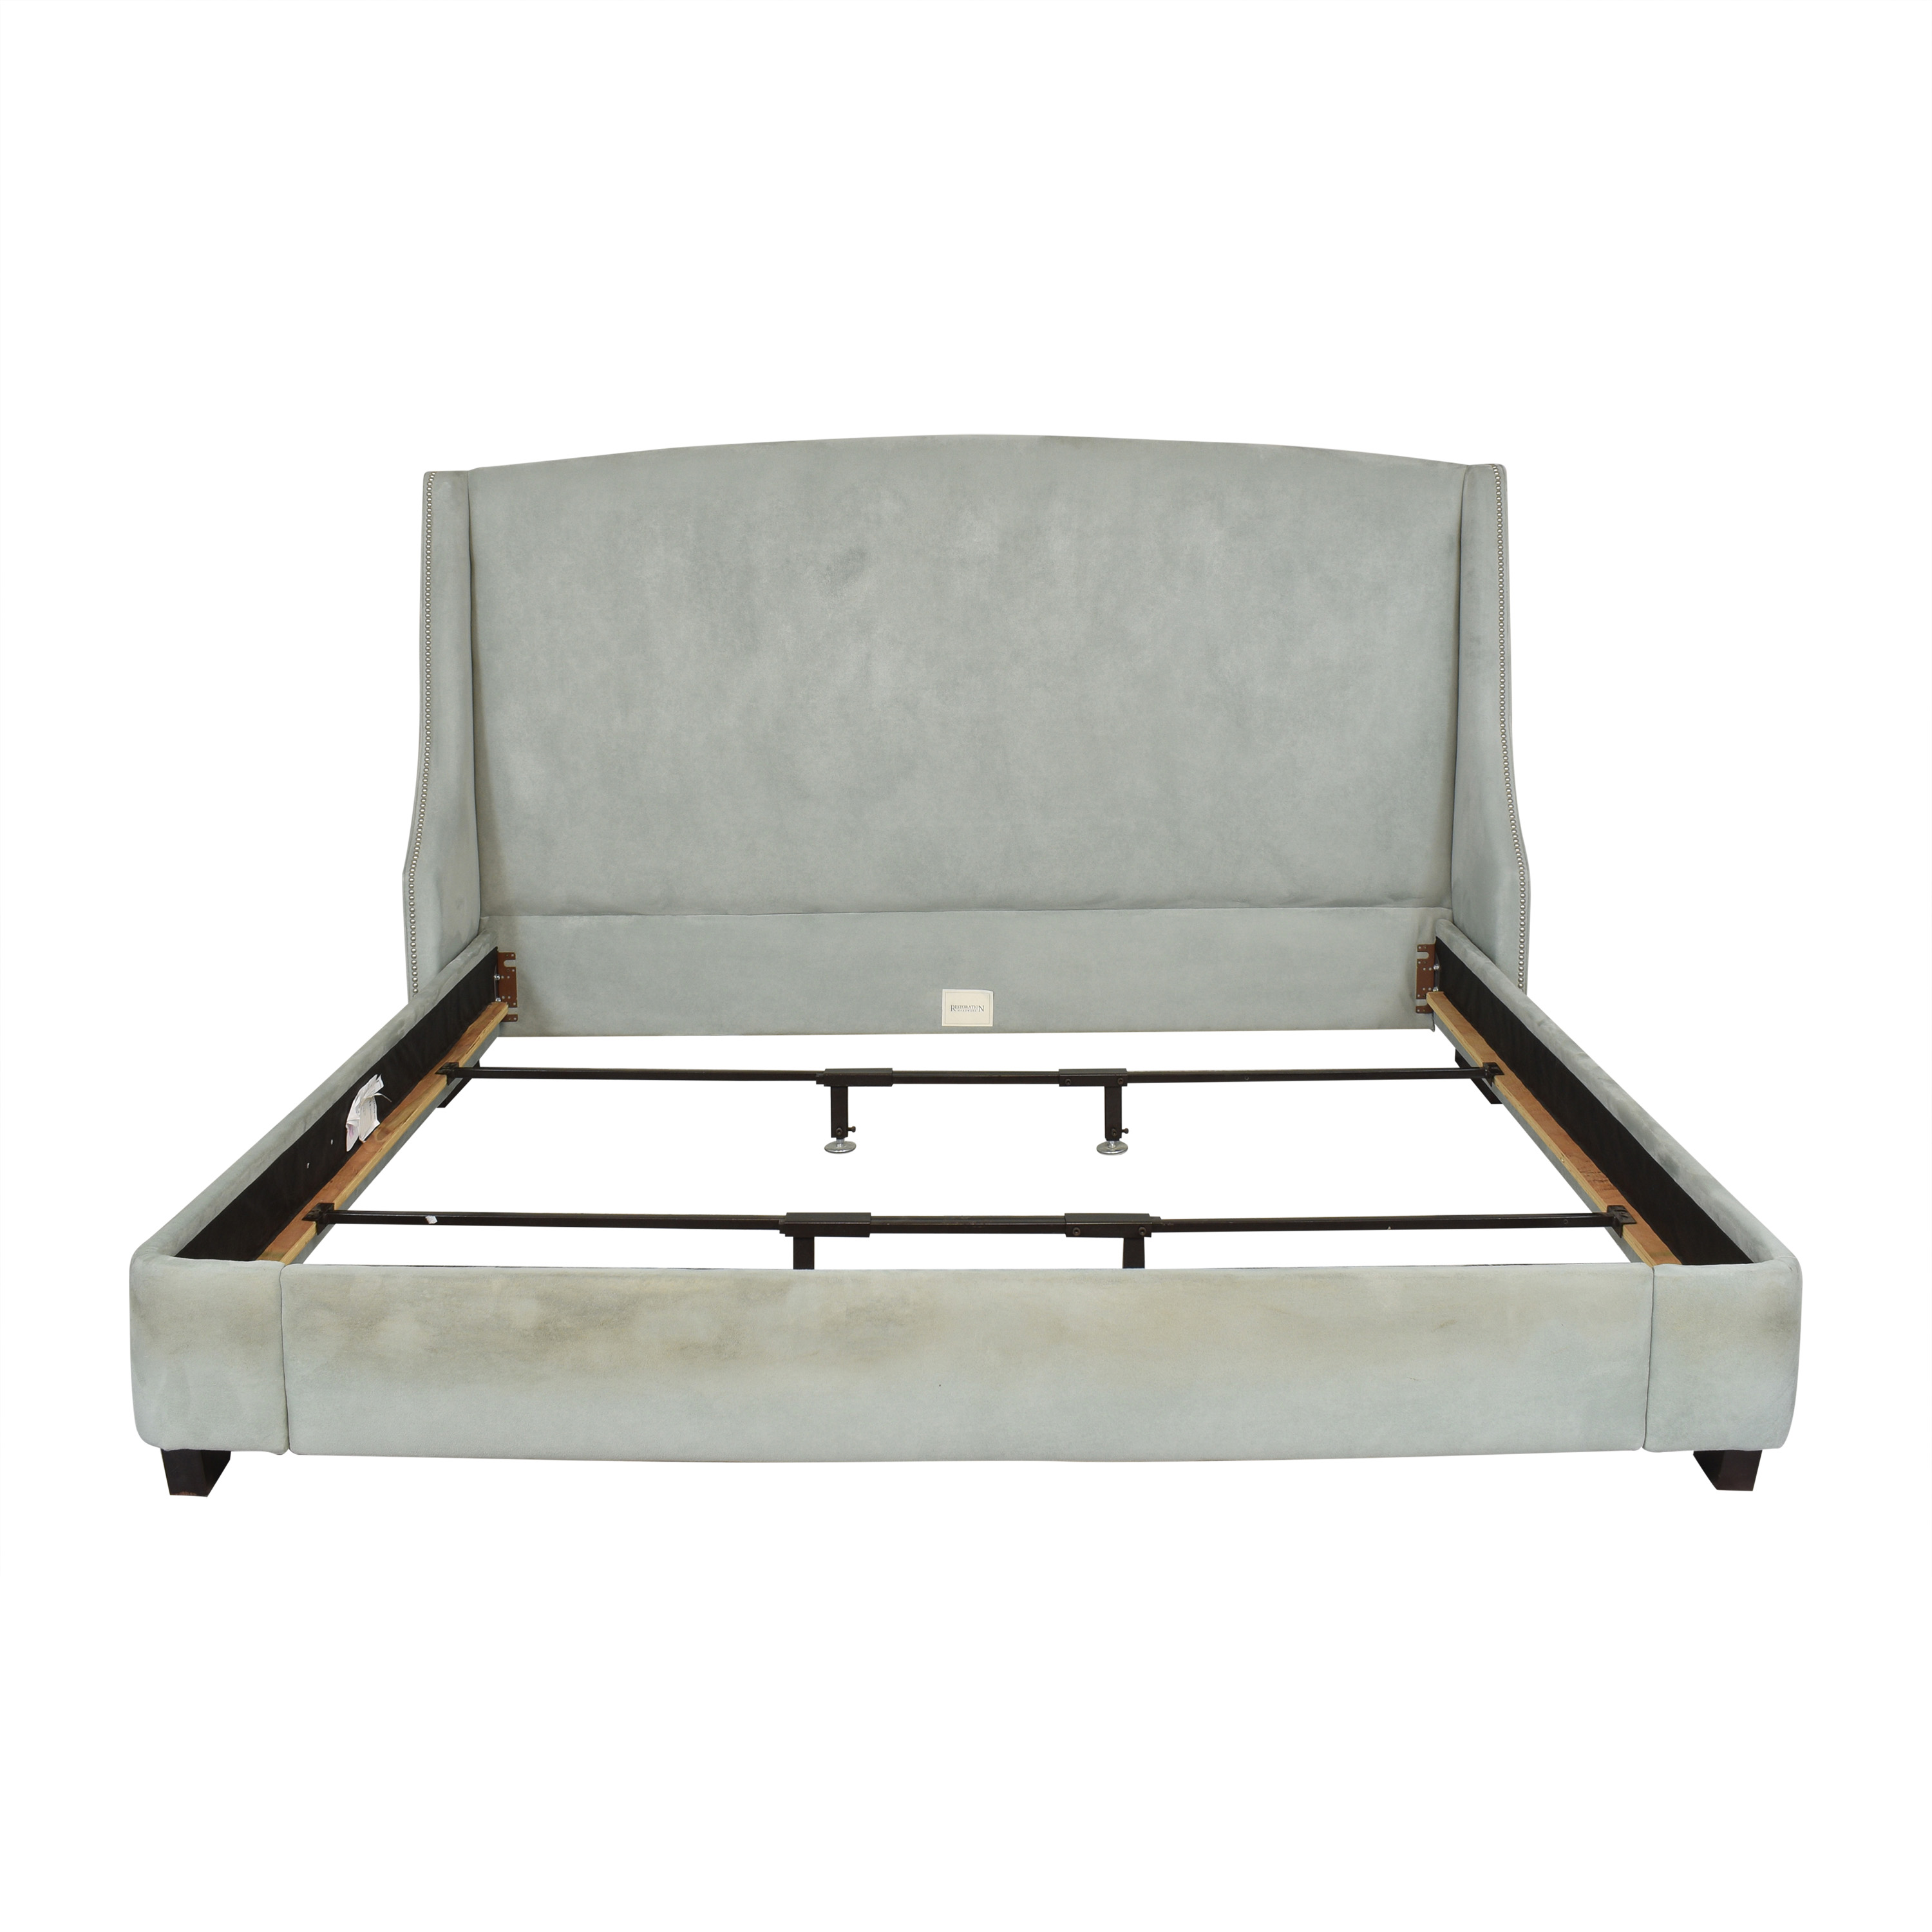 Restoration Hardware Restoration Hardware Warner King Bed with Nailheads price